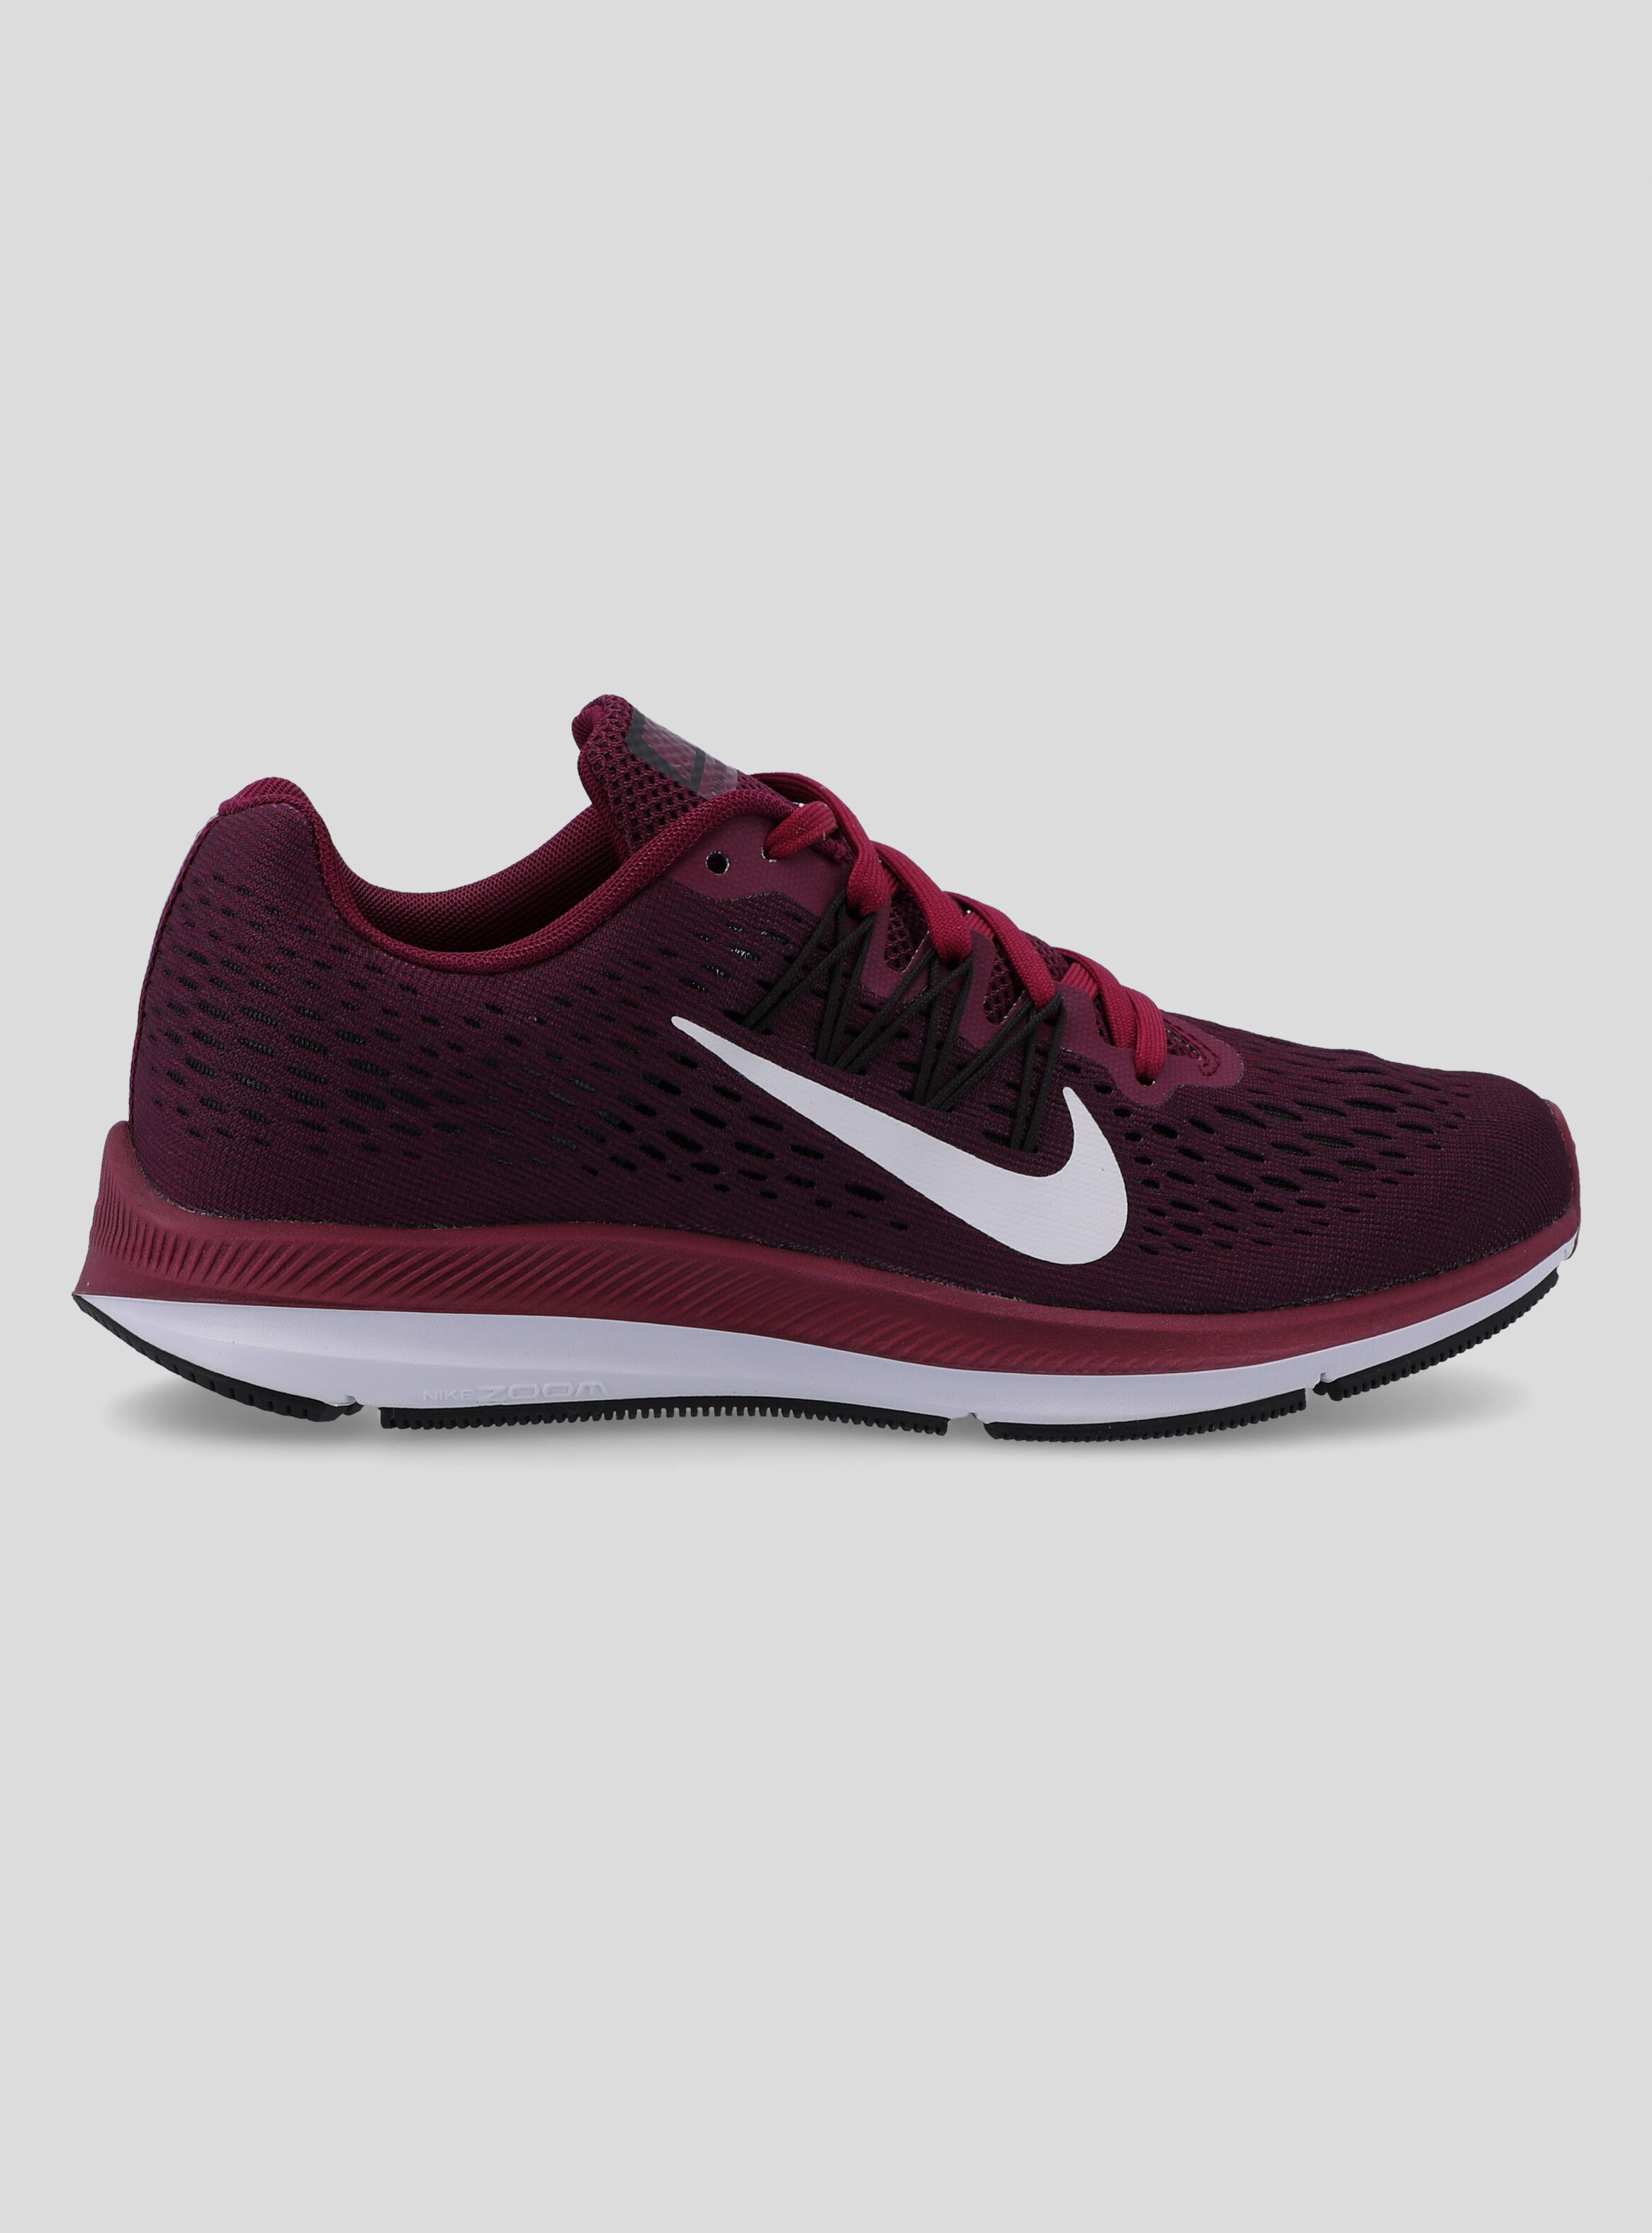 5 Zapatilla Nike Running Mujer Winflo Zoom rqrwxUdt4